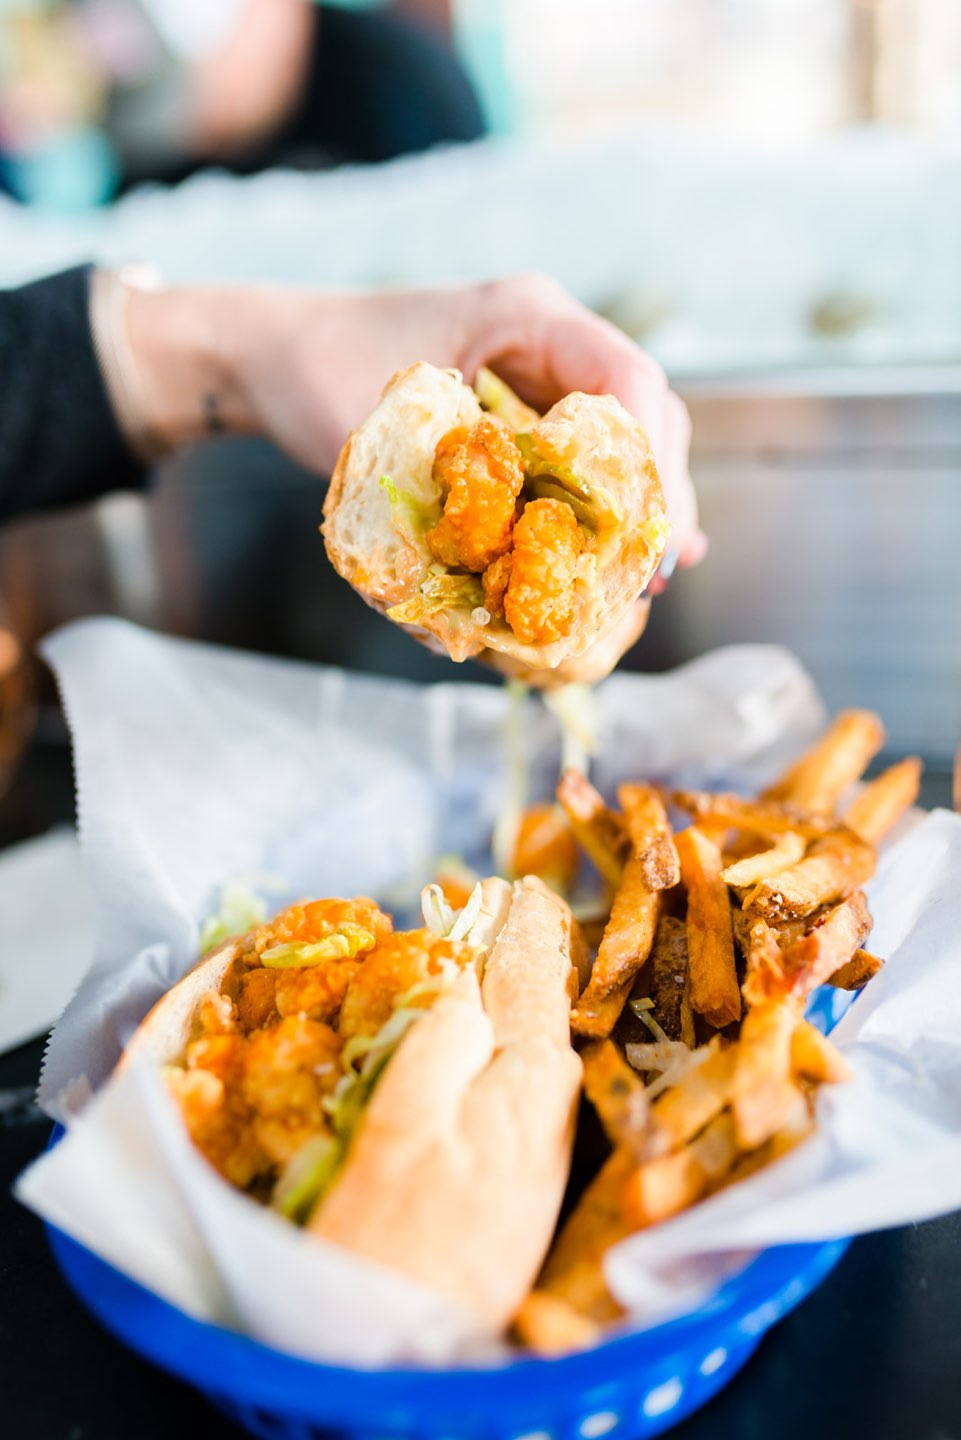 Raleigh Oyster Crawl - I'm Fixin' To - @mbg0112 | Raleigh Oyster Crawl by popular North Carolina blog, I'm Fixin' To: image of a woman holding a fried oyster sandwich over a blue plastic basket filled with fries.